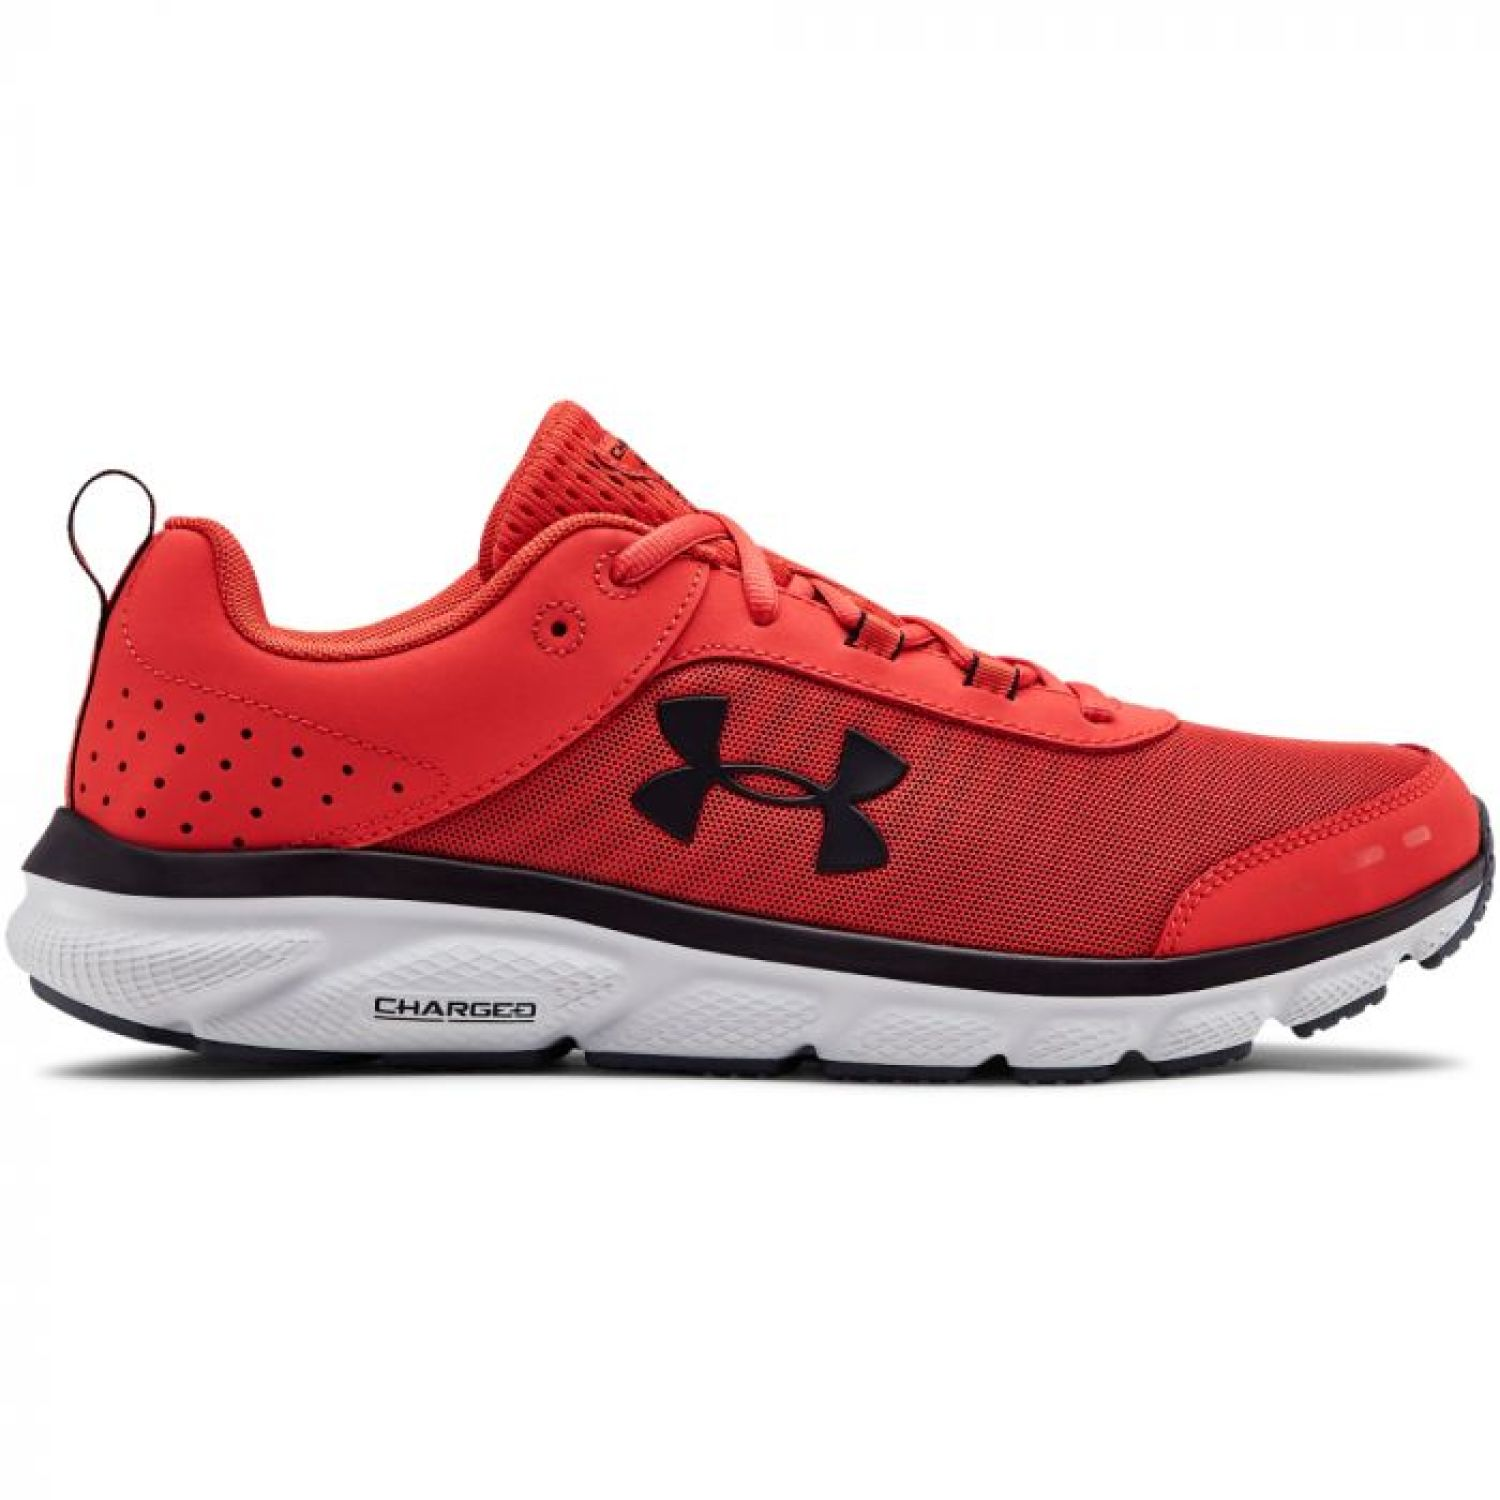 Under Armour UA Charged Assert 8 Rojo Trail Running